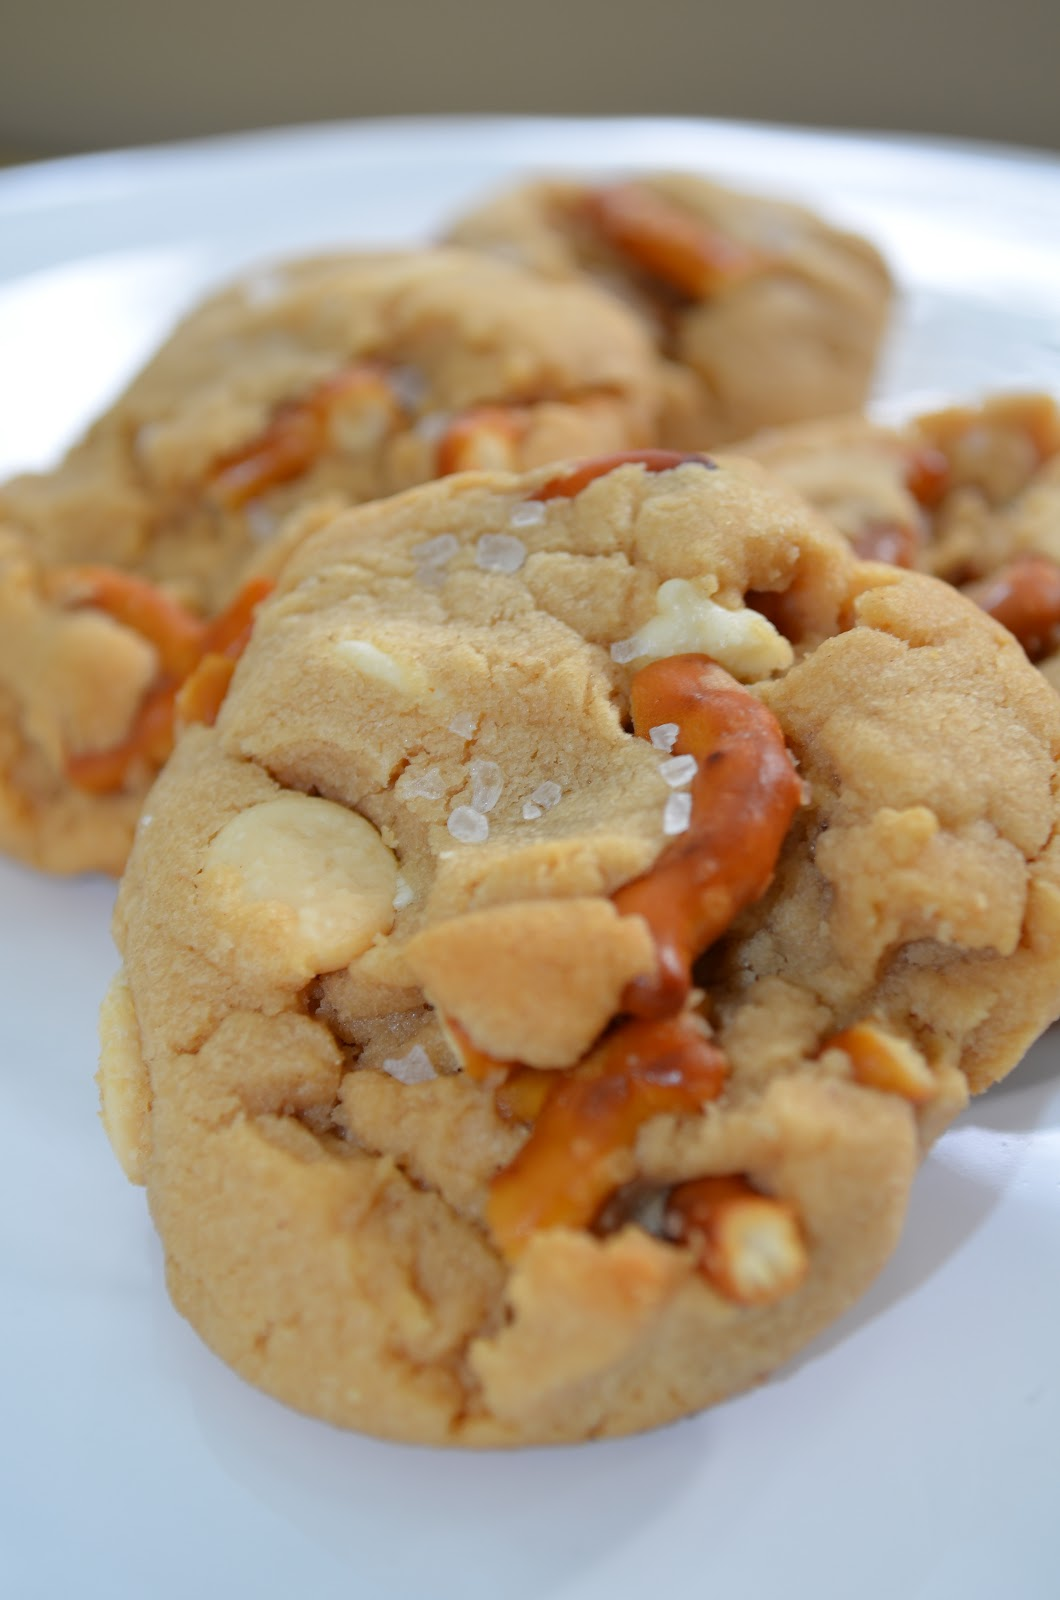 The Sweet & Salty. Peanut Butter Cookie loaded with pretzels, white chocolat